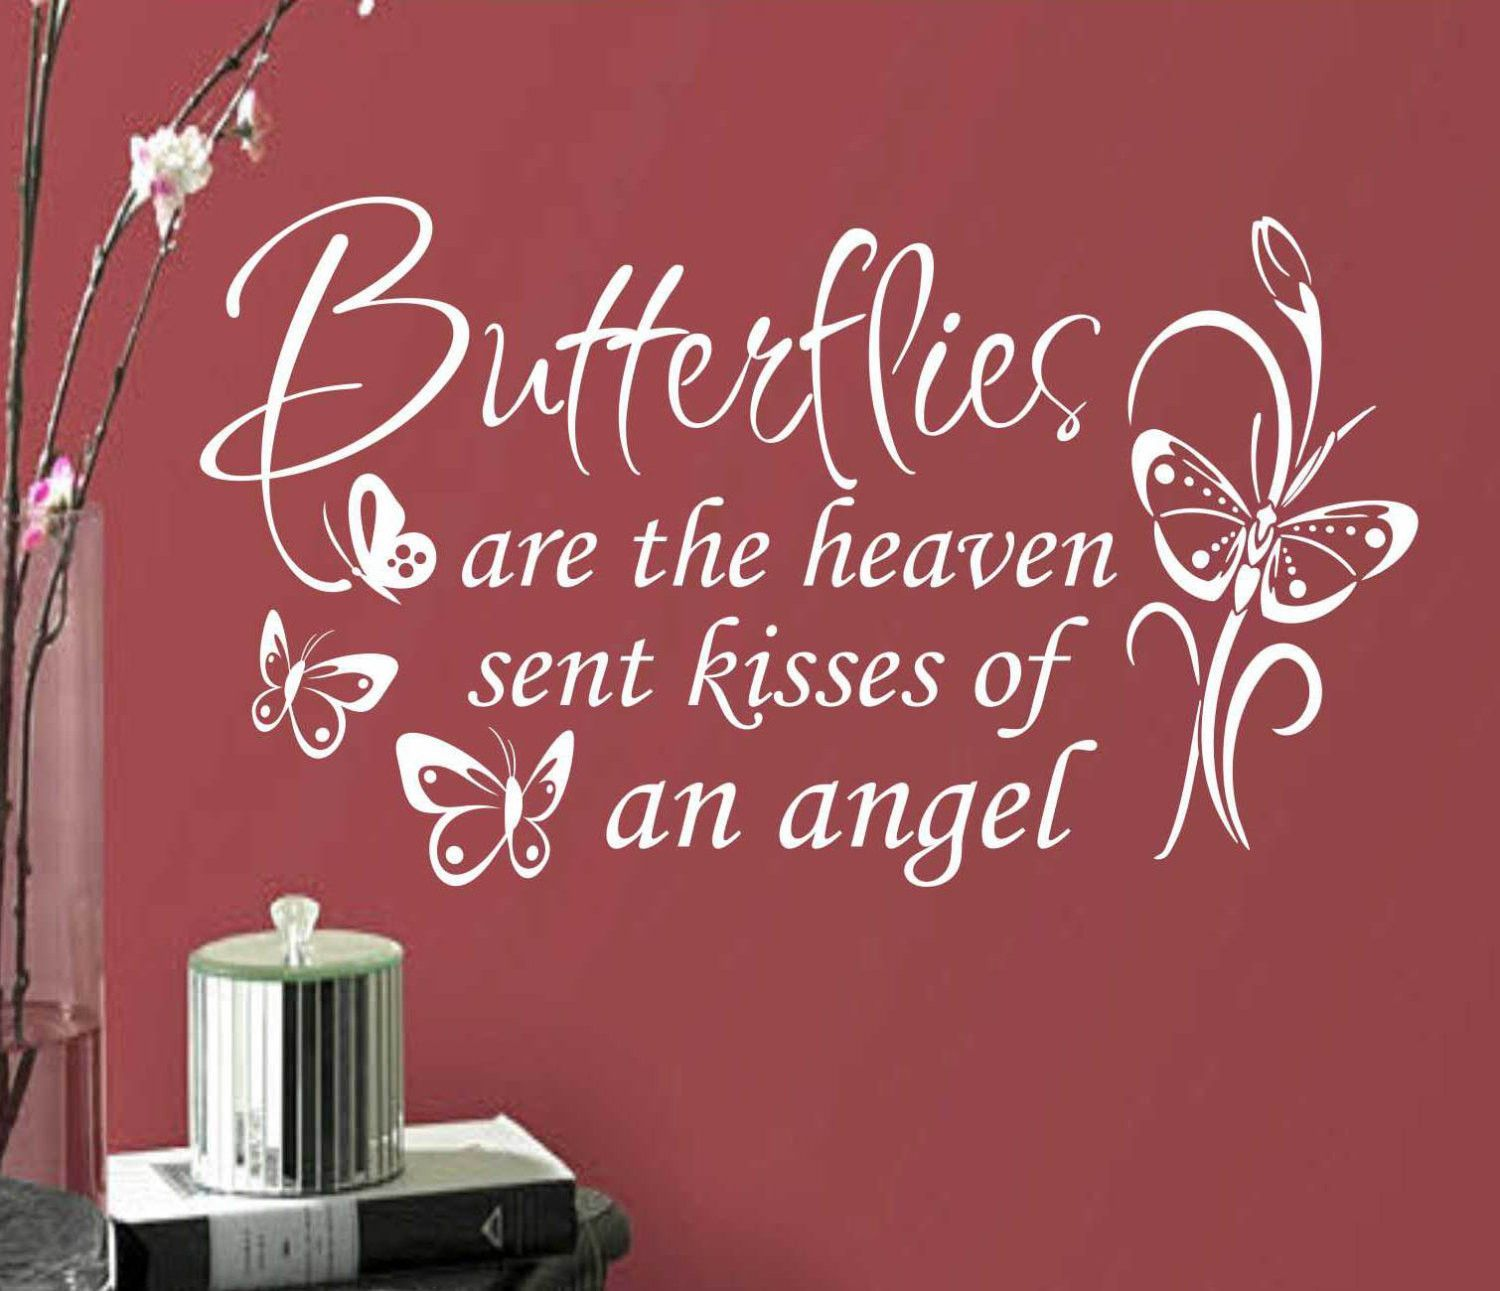 10個英文書法刺青貼 Quotes Words Tattoo Sticker 2 0 三送一: Kissing Quotes, Butterfly Quotes, Quotes